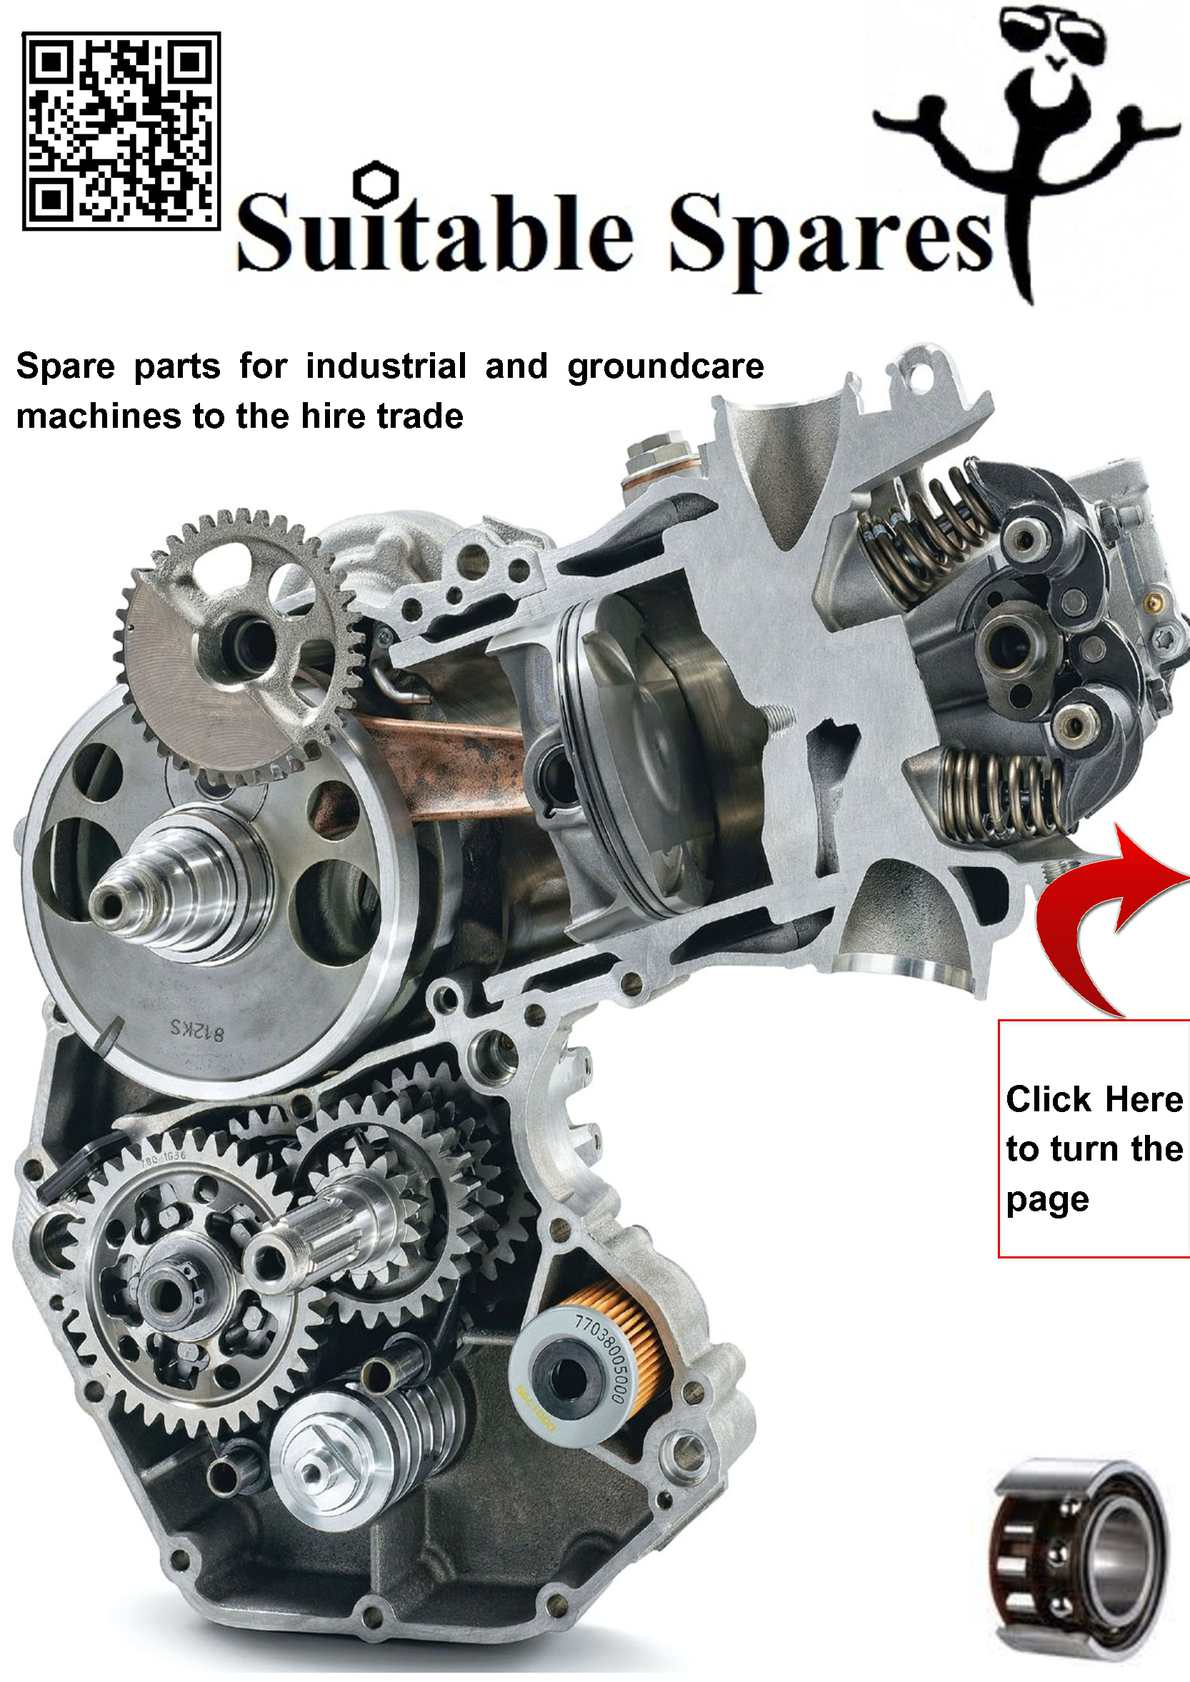 Calamo Suitable Spares Catalogue April 2012 Husqvarna 325 Chainsaw Engine Diagram